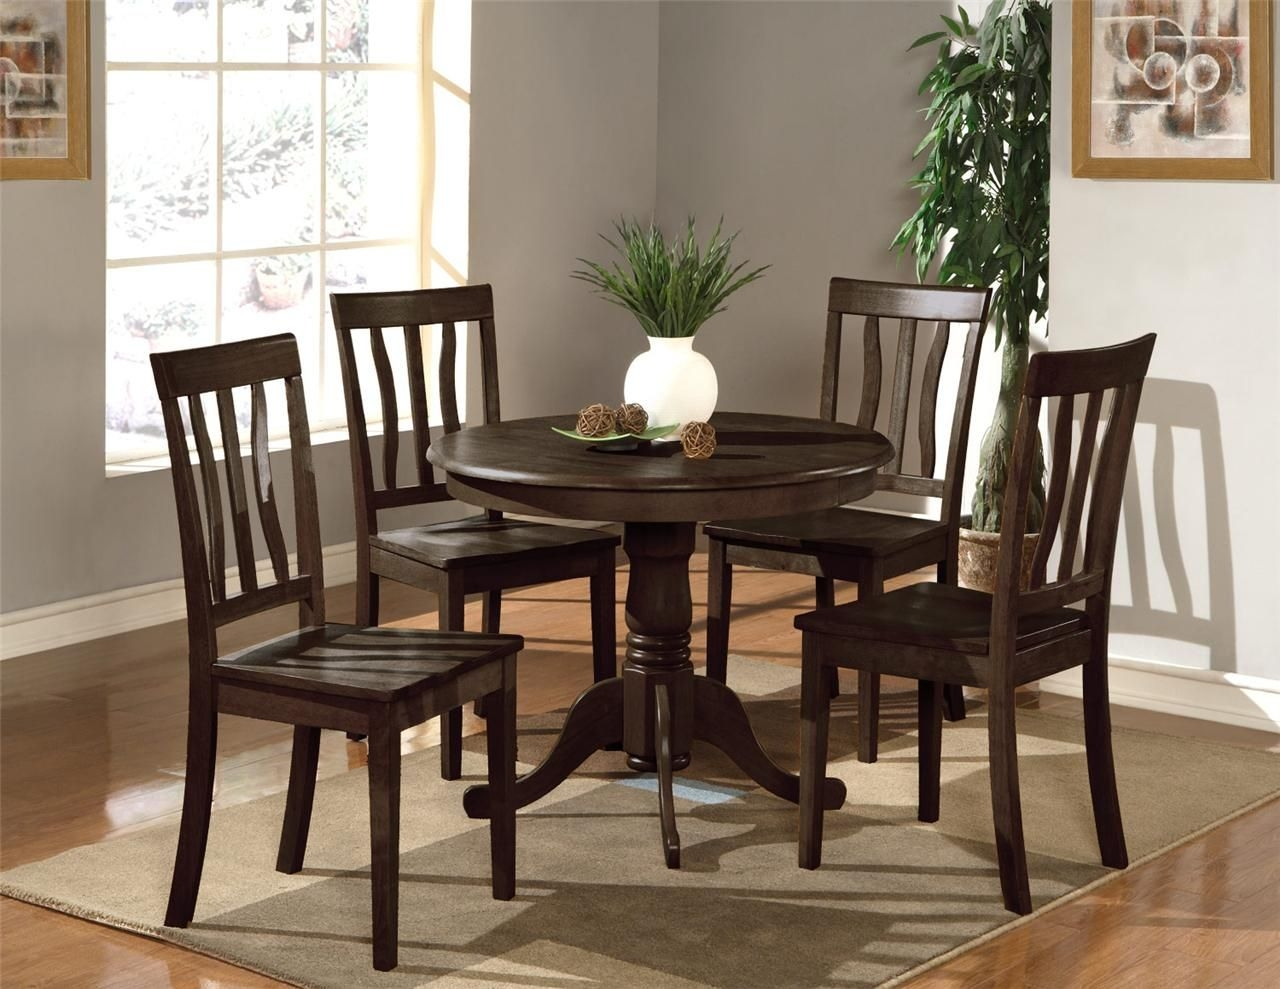 5 Pc Round Table Dinette Kitchen Table  4 Wood Or Padded Chairs In Cappuccino  Ebay